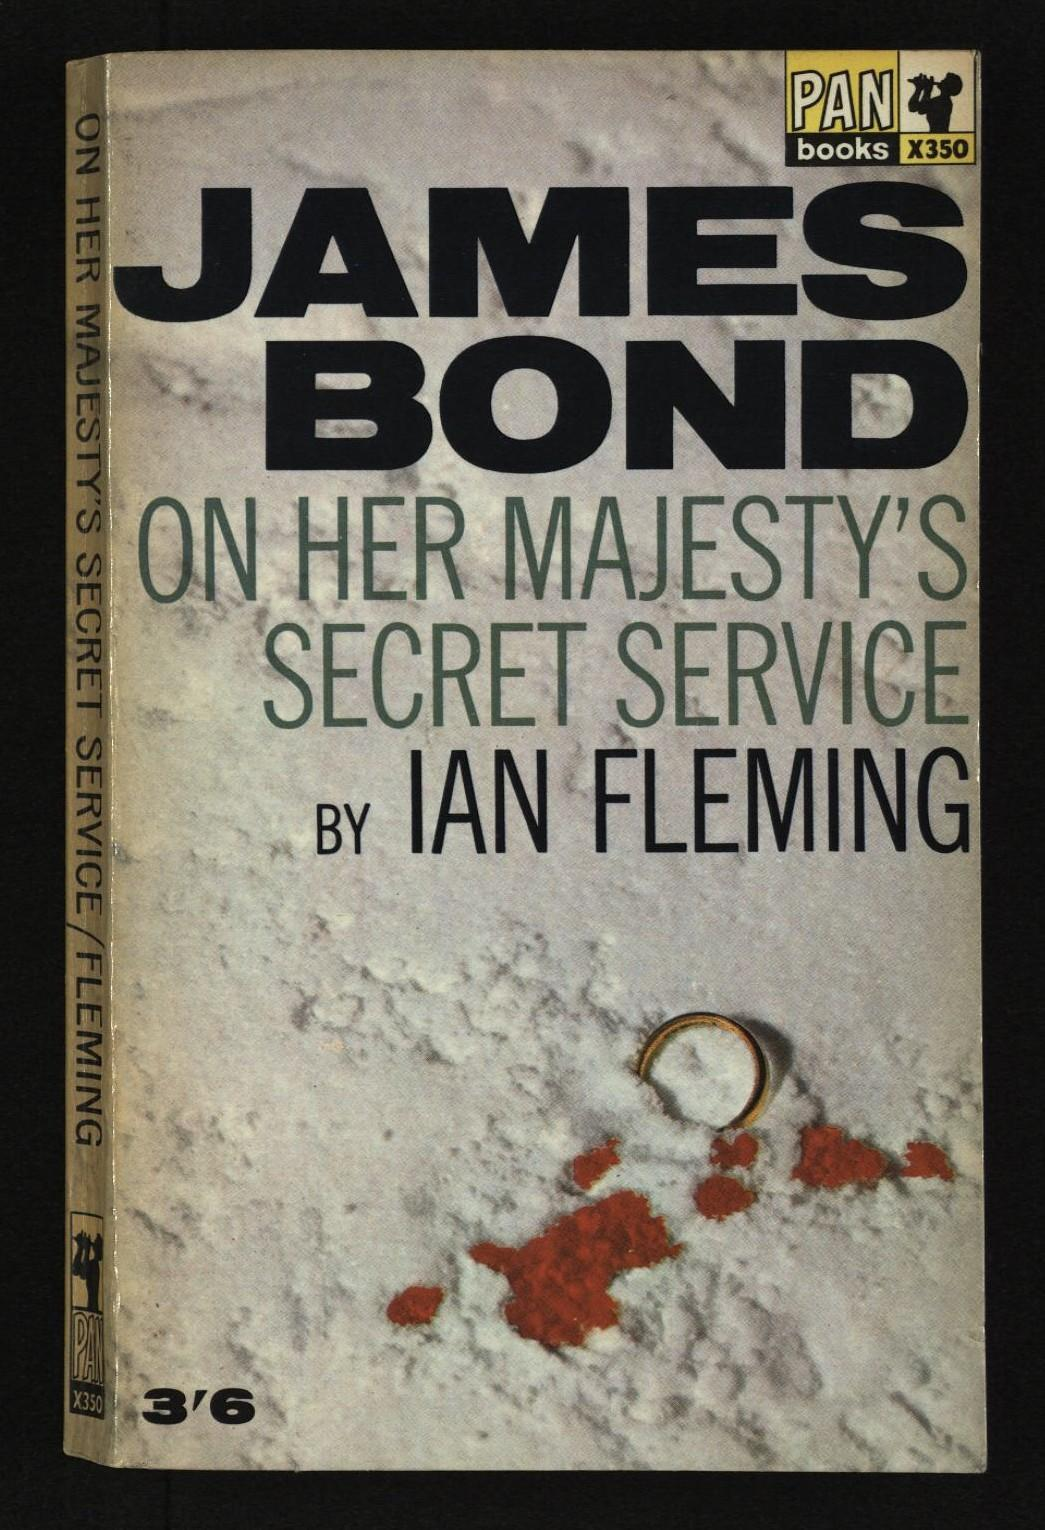 """On Her Majesty's Secret Service"""". Cover designed by Raymond Hawkey. London- Pan Books, 1965."""